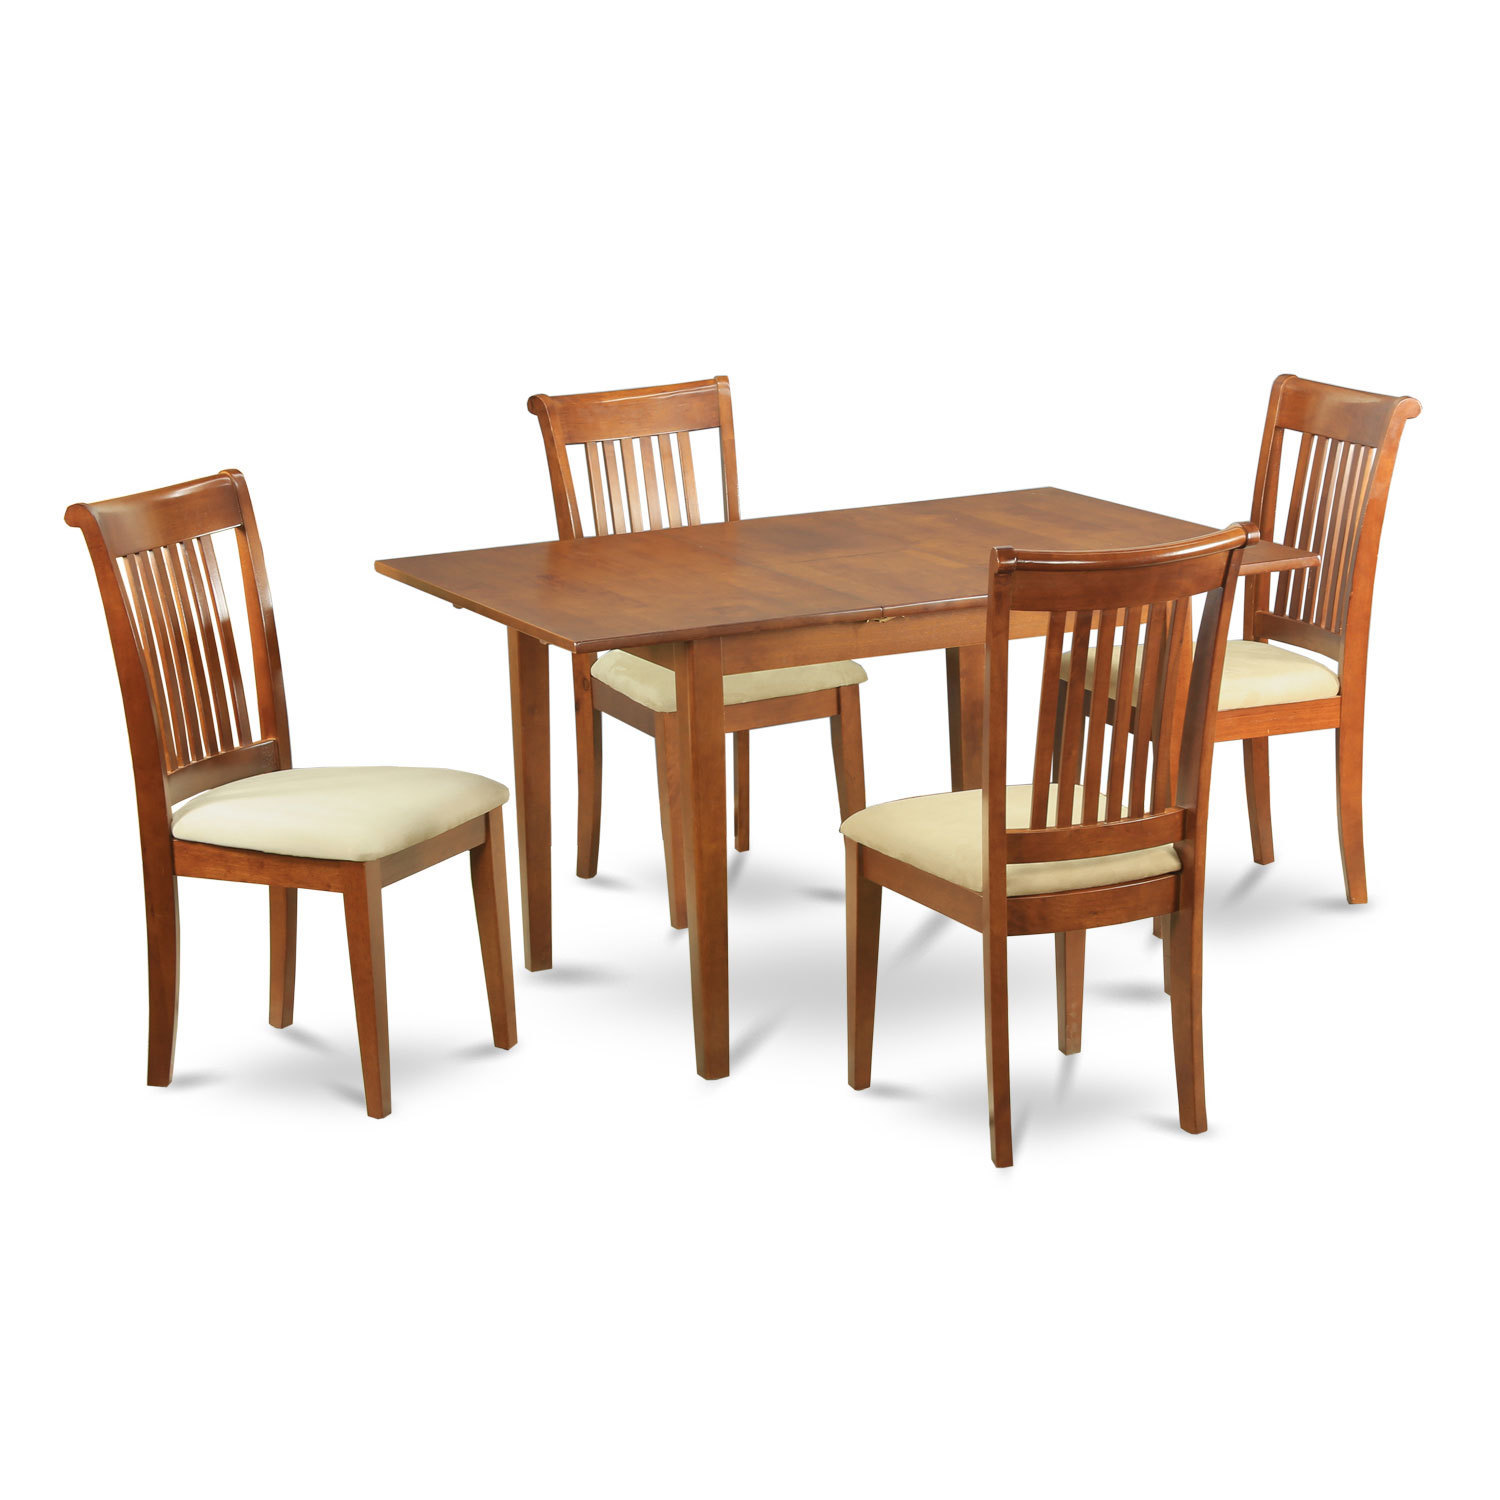 Small dinette set design homesfeed for Dining set decoration